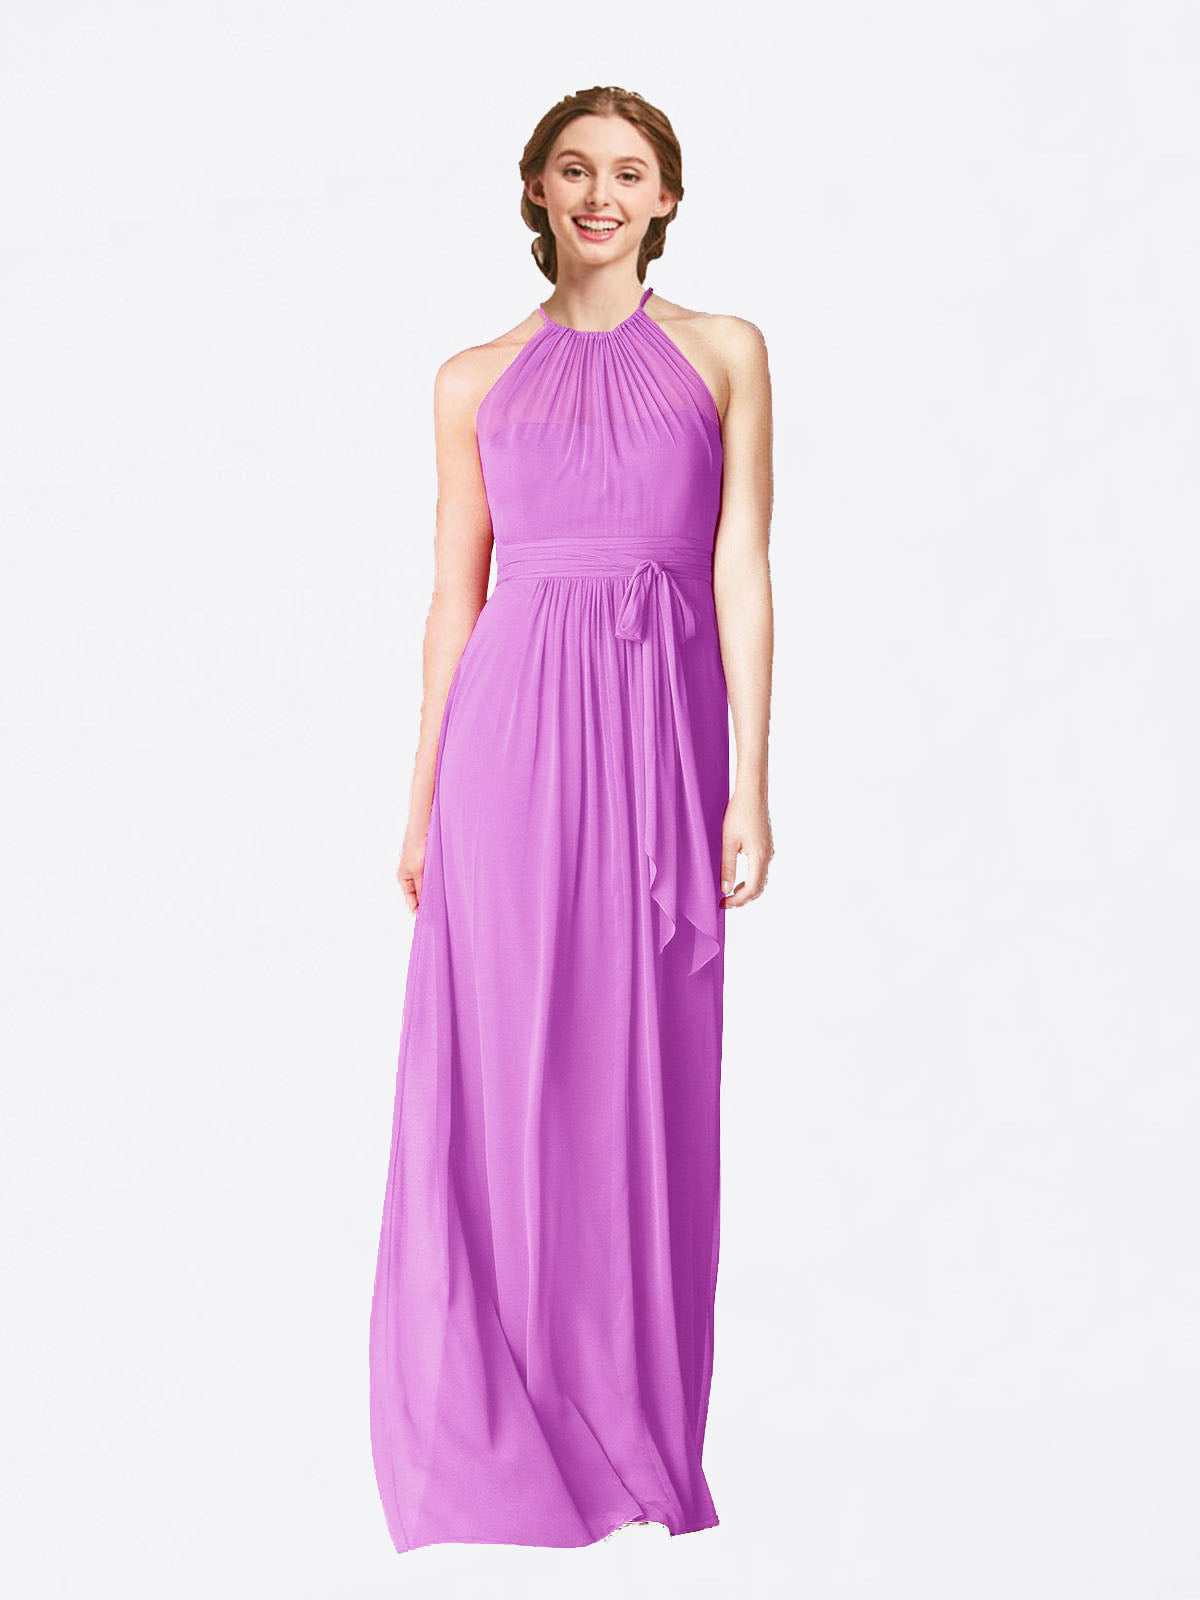 Long A-Line Halter Sleeveless Violet Chiffon Bridesmaid Dress Laura